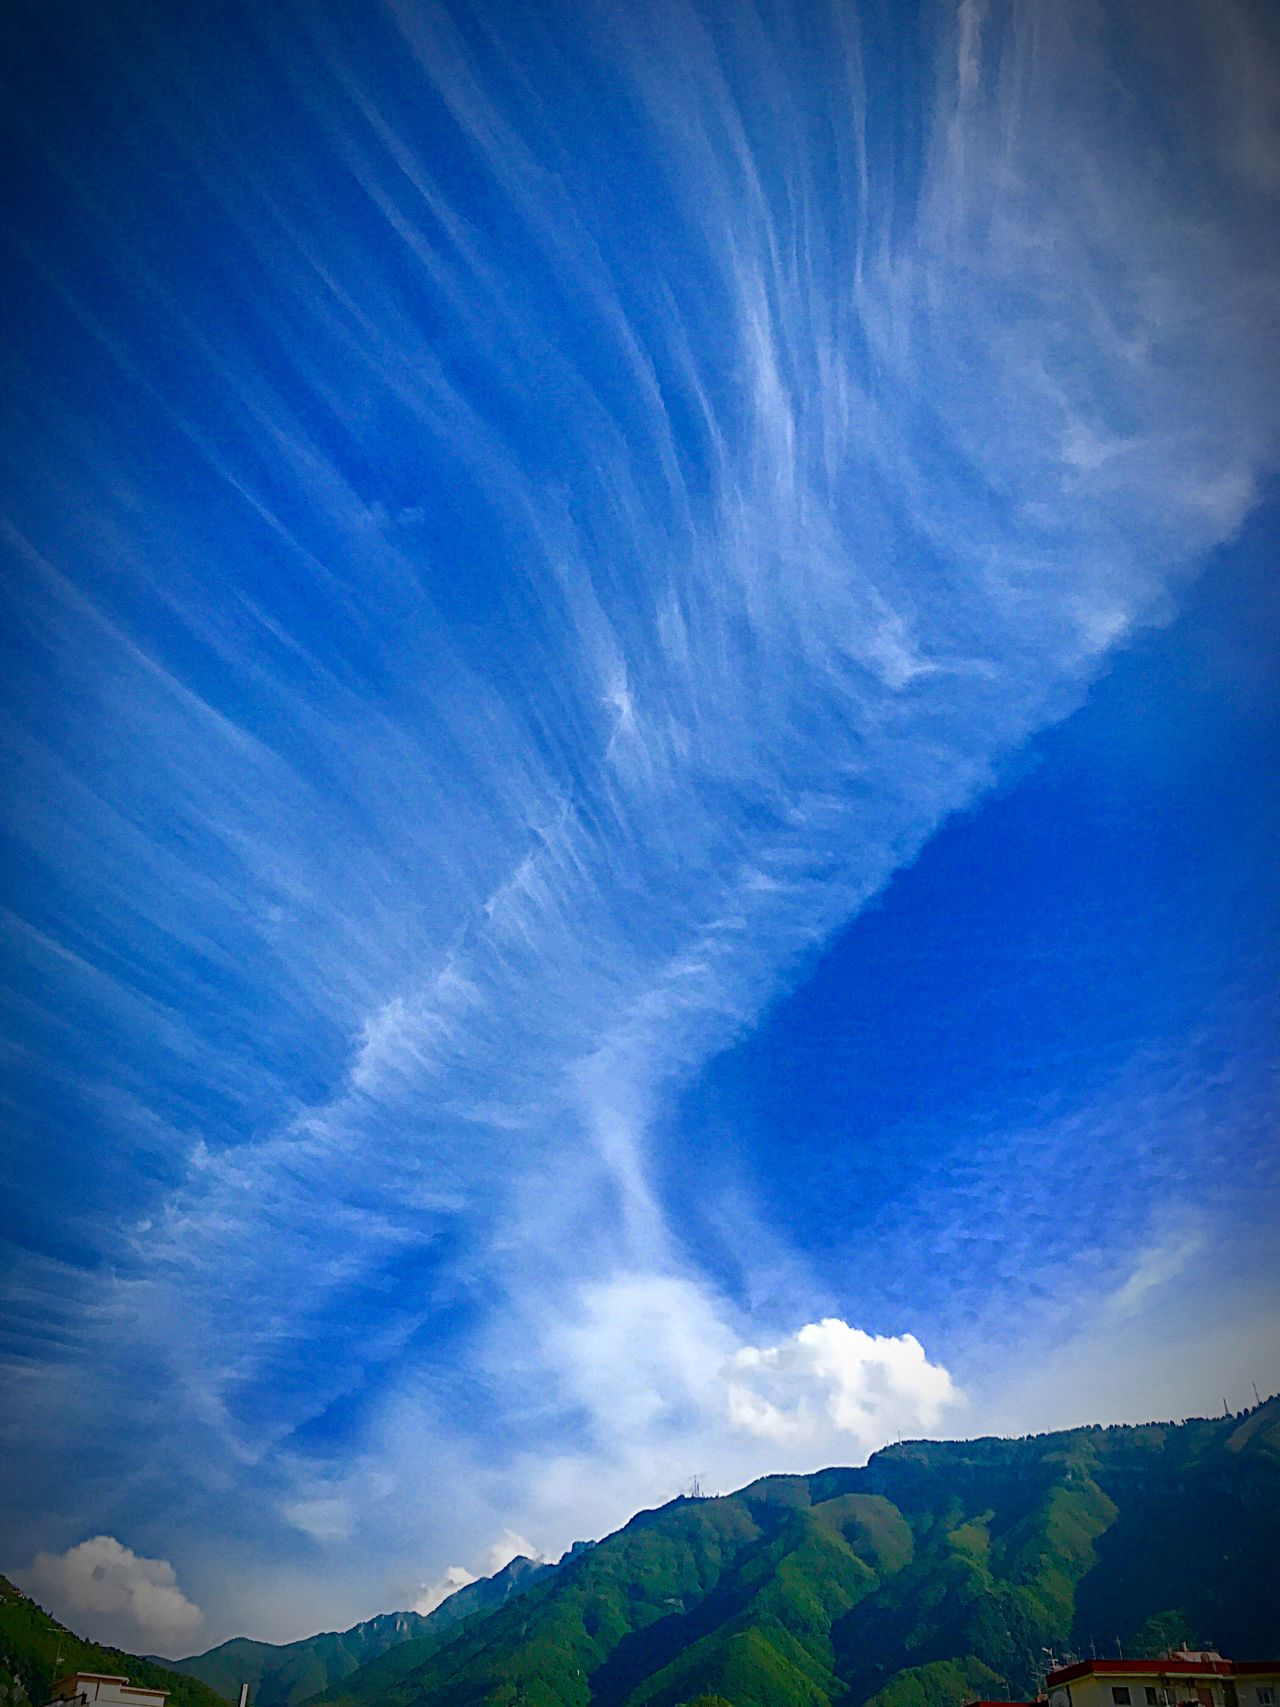 Beautiful sky Blue Sky Beauty In Nature Nature Scenics Tranquil Scene Landscape Outdoors Cloud - Sky Tranquility No People Day Mountain